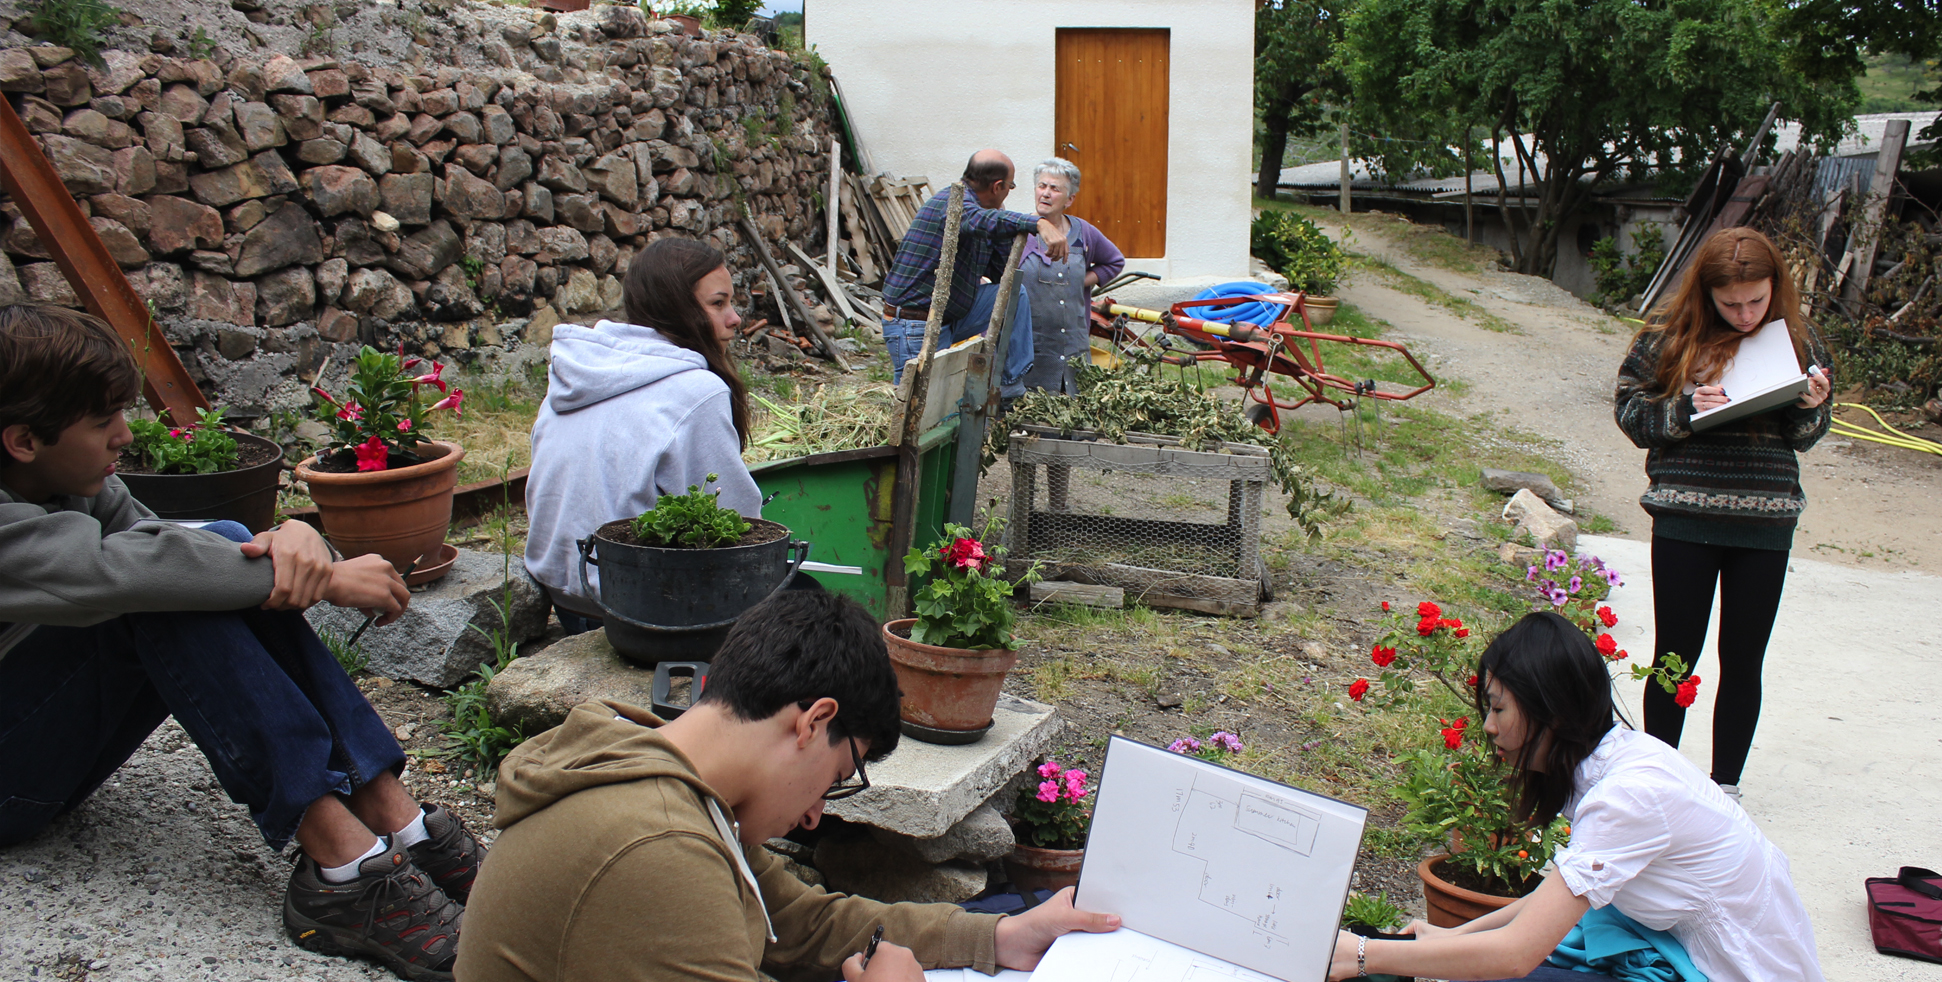 architecture students surveying a site